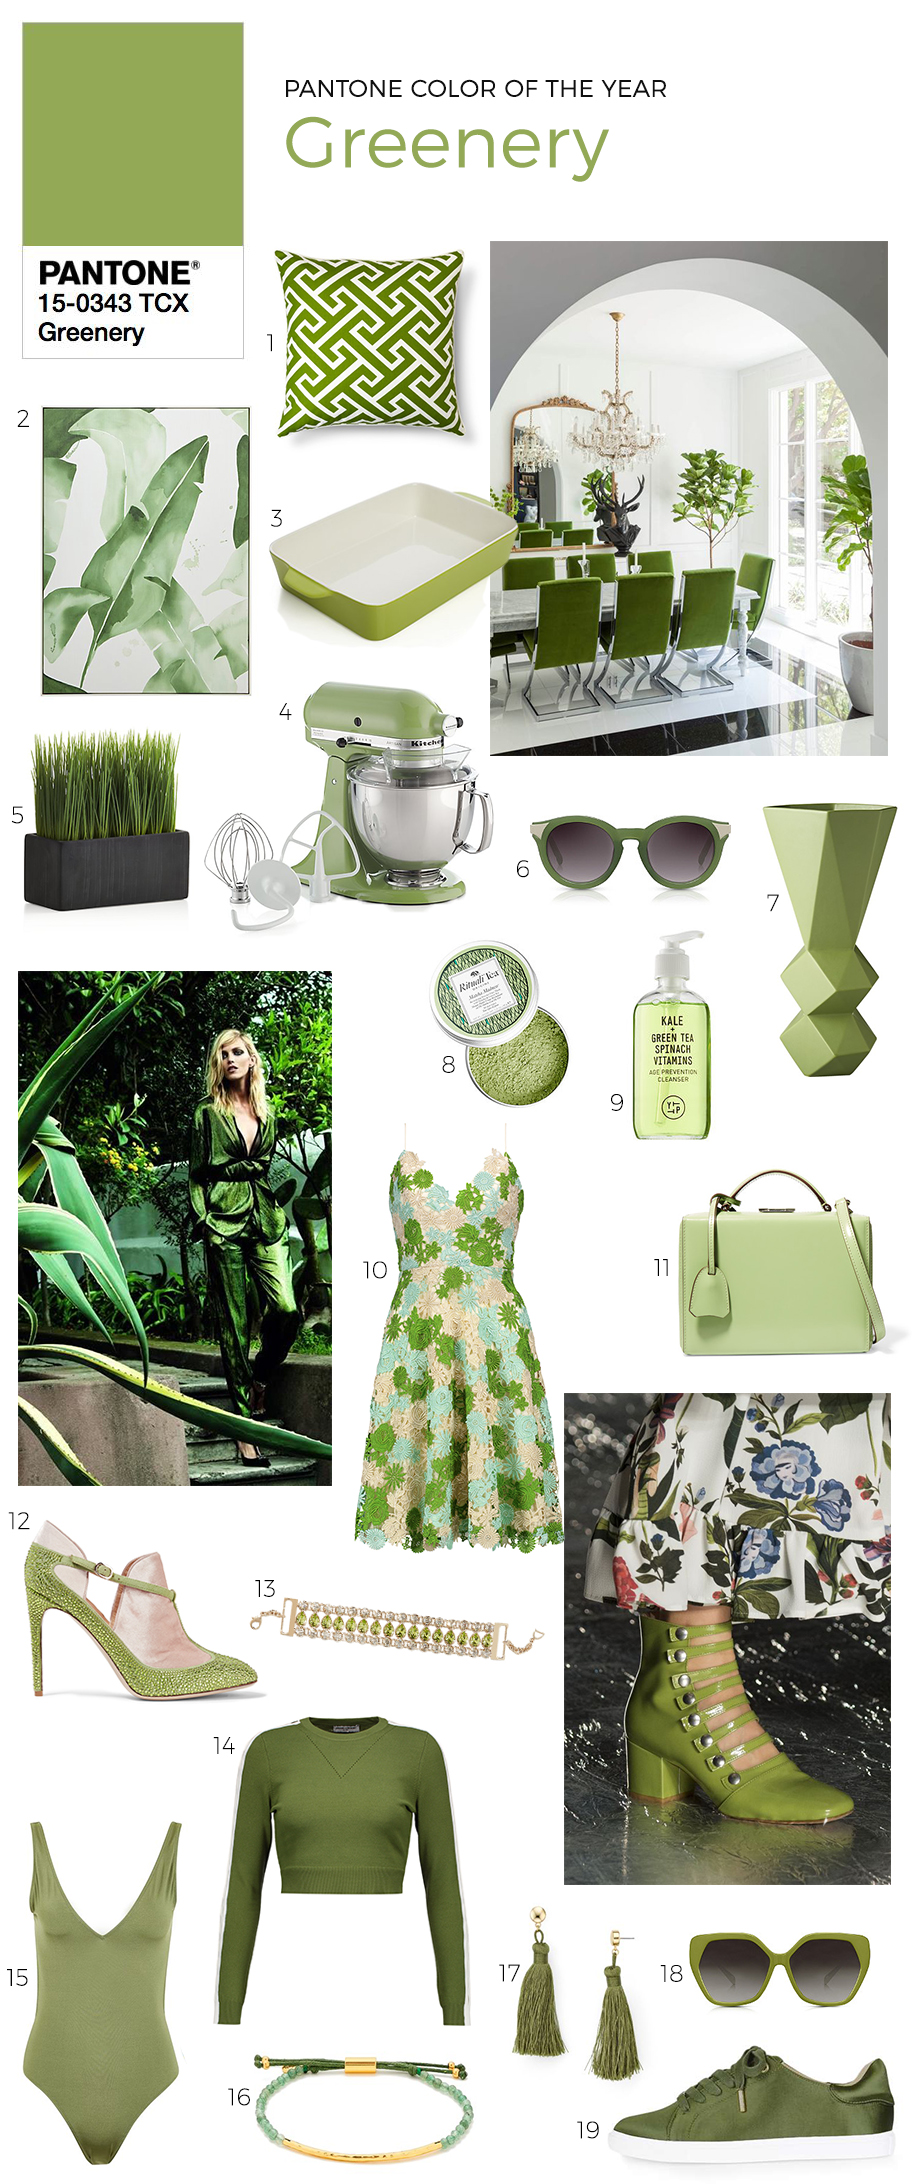 Home and fashion items in Pantone's color of 2017, greenery.